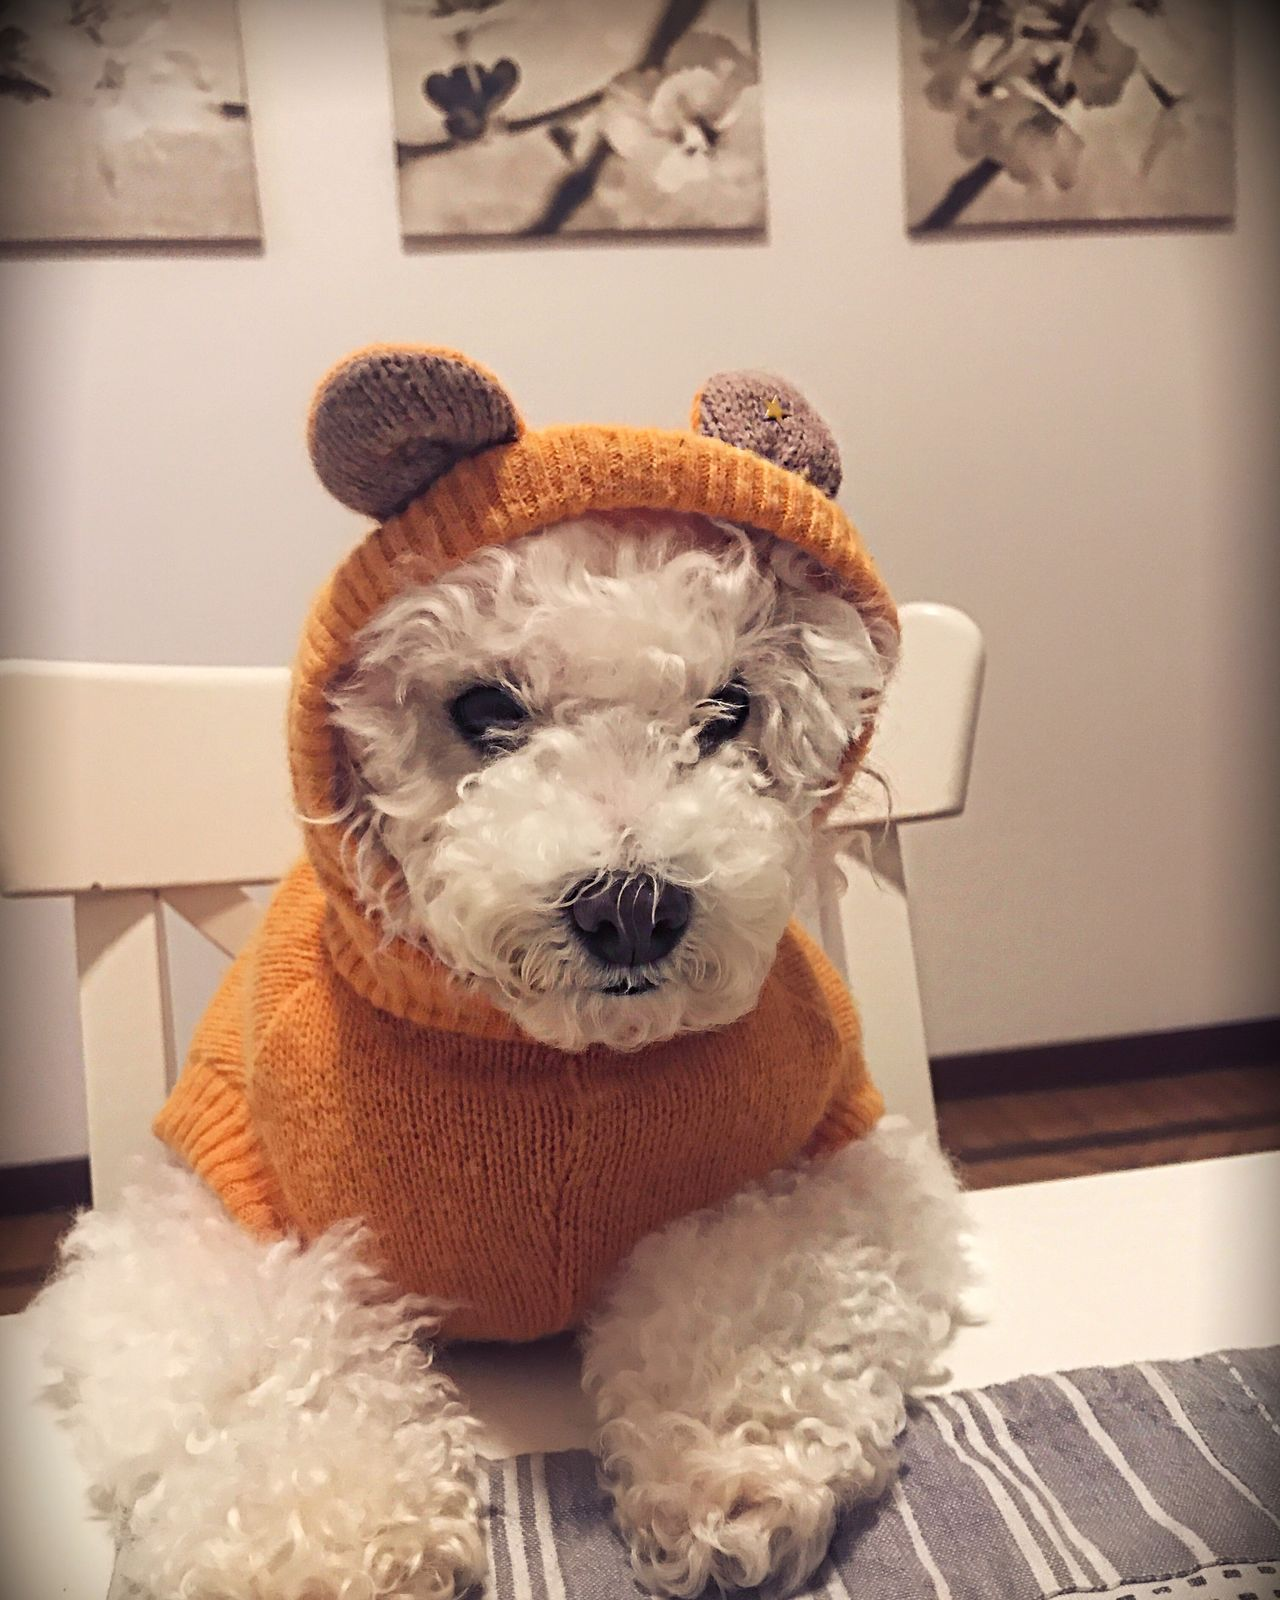 Dog Poodle Poodle Love Poodletoy Domestic Animals Looking At Camera Pets Animal Themes Animalface Portrait One Animal Home Interior Mammal No People Stuffed Toy Angry Posing Small Clothes Dresseddog Dressed